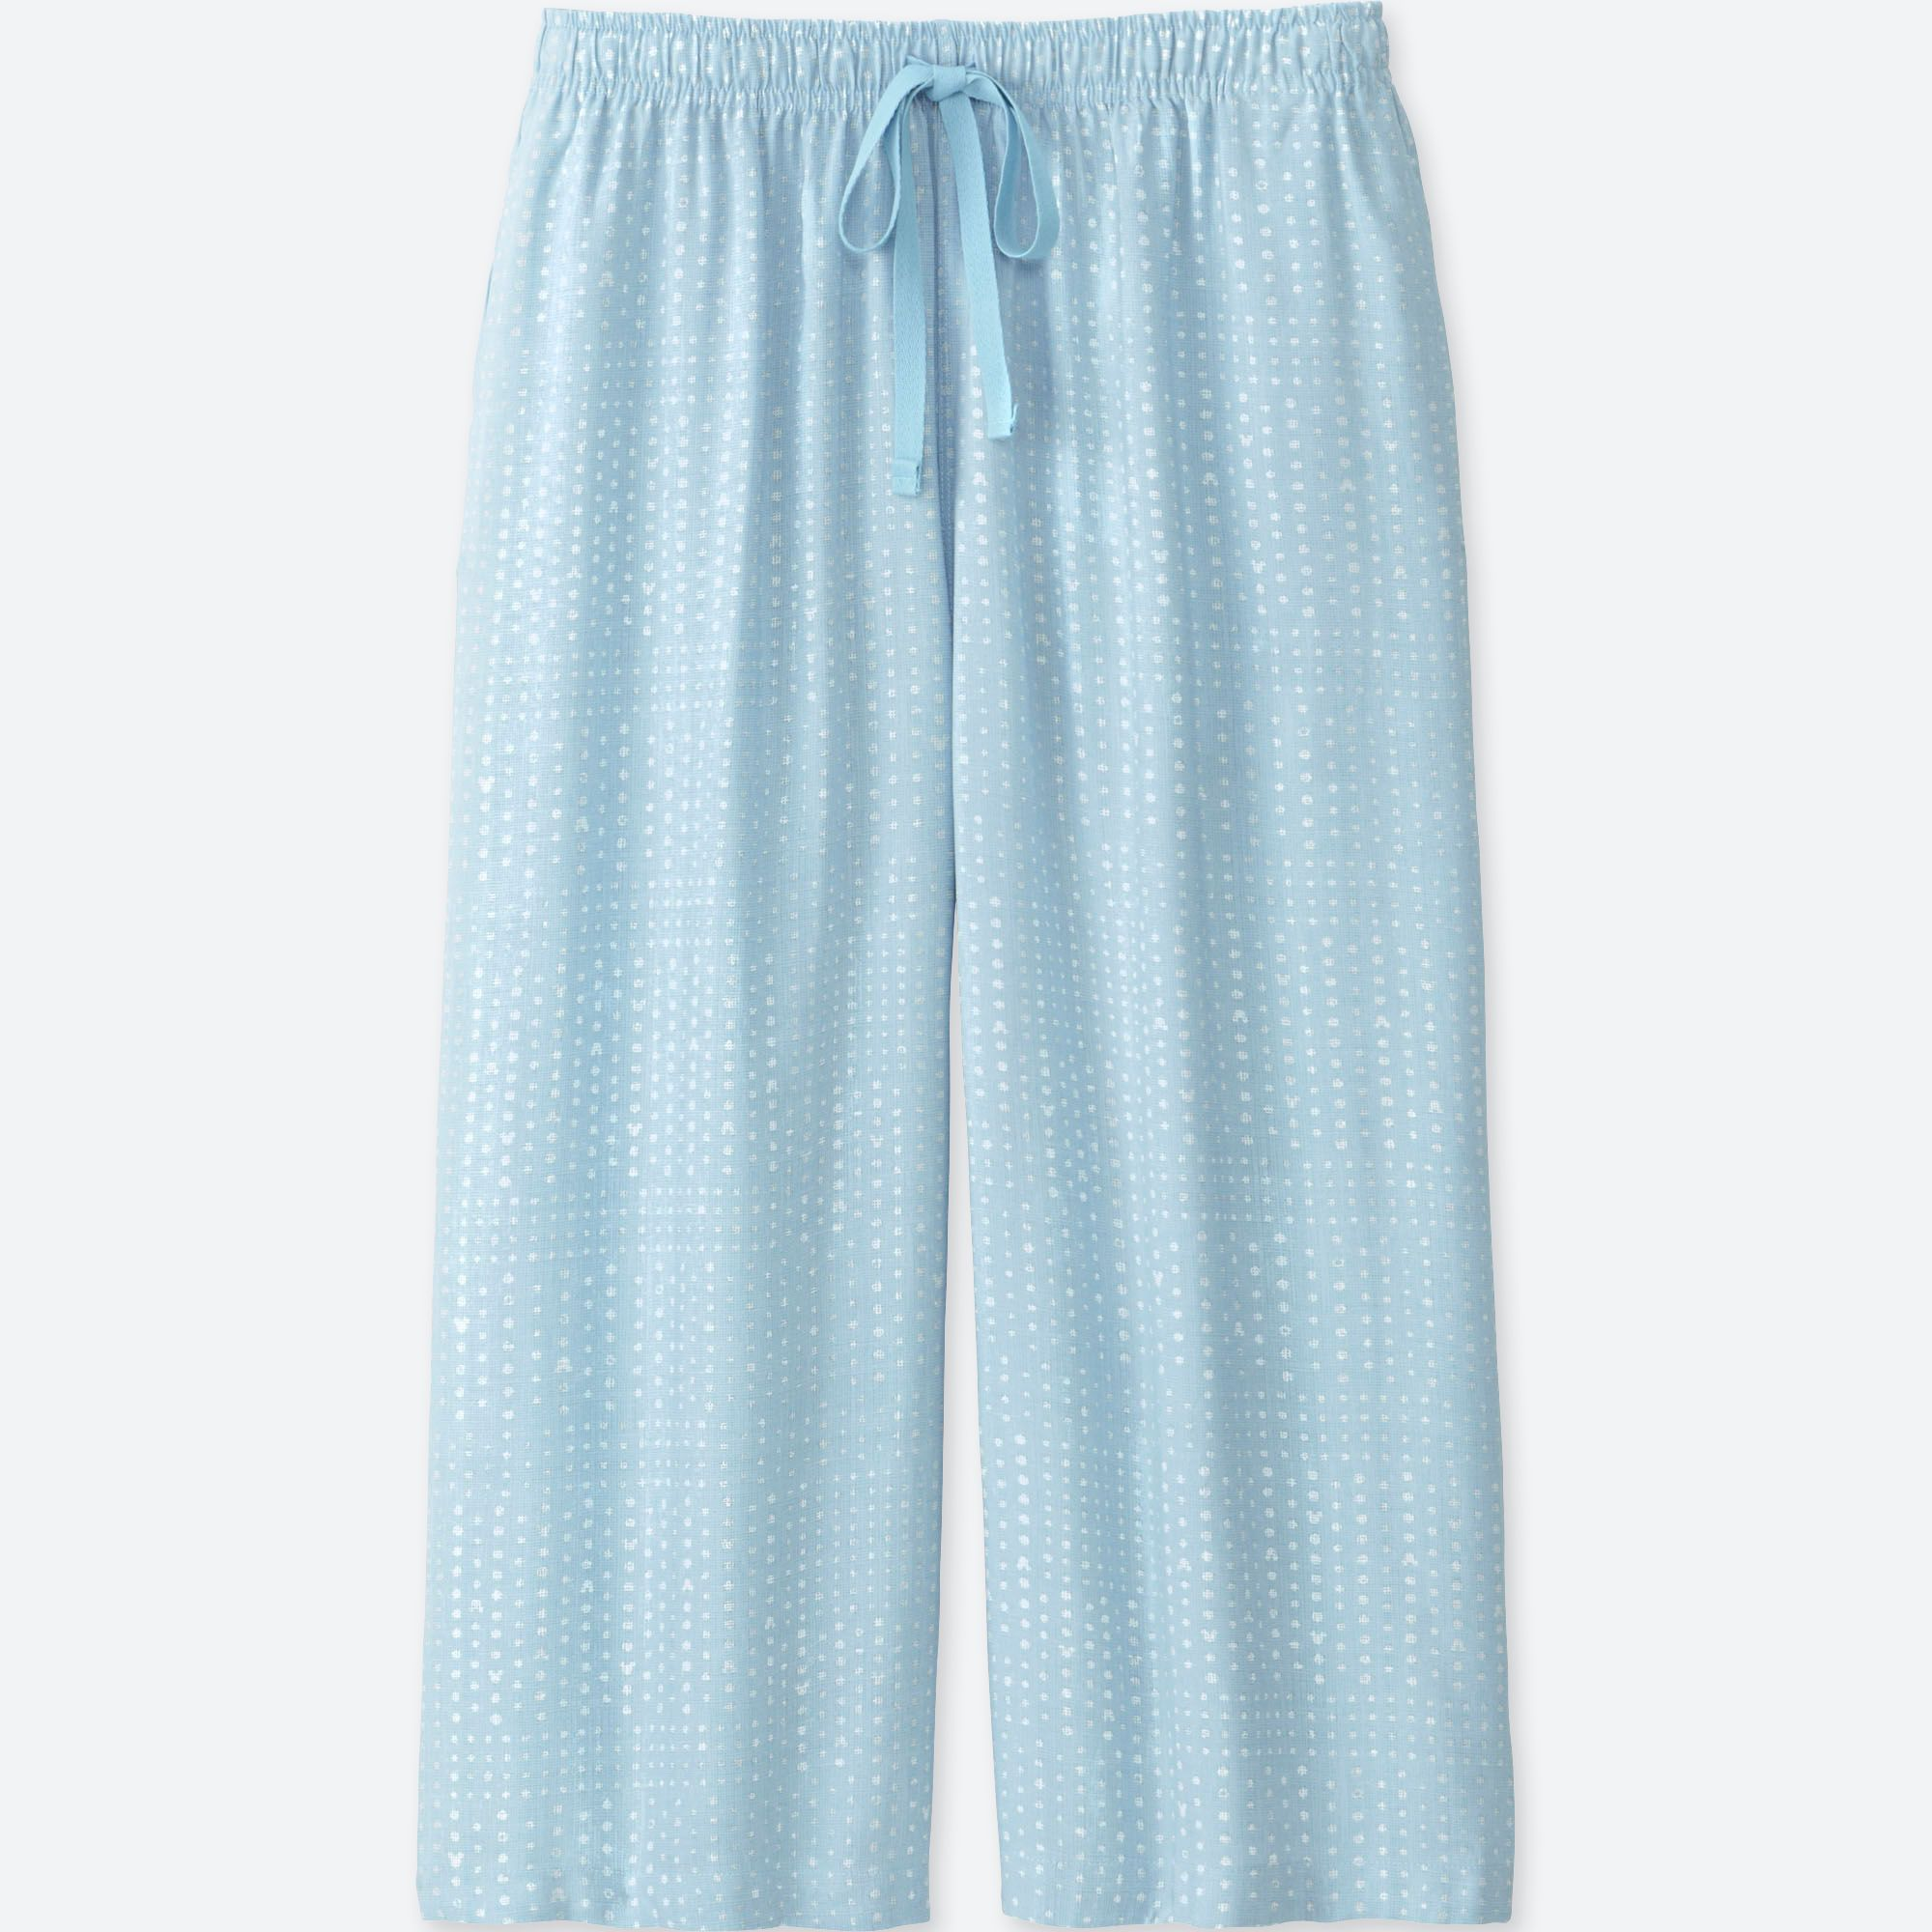 UNIQLO's New Mickey Blue Line Is Ideal for Warm Summer Afternoons